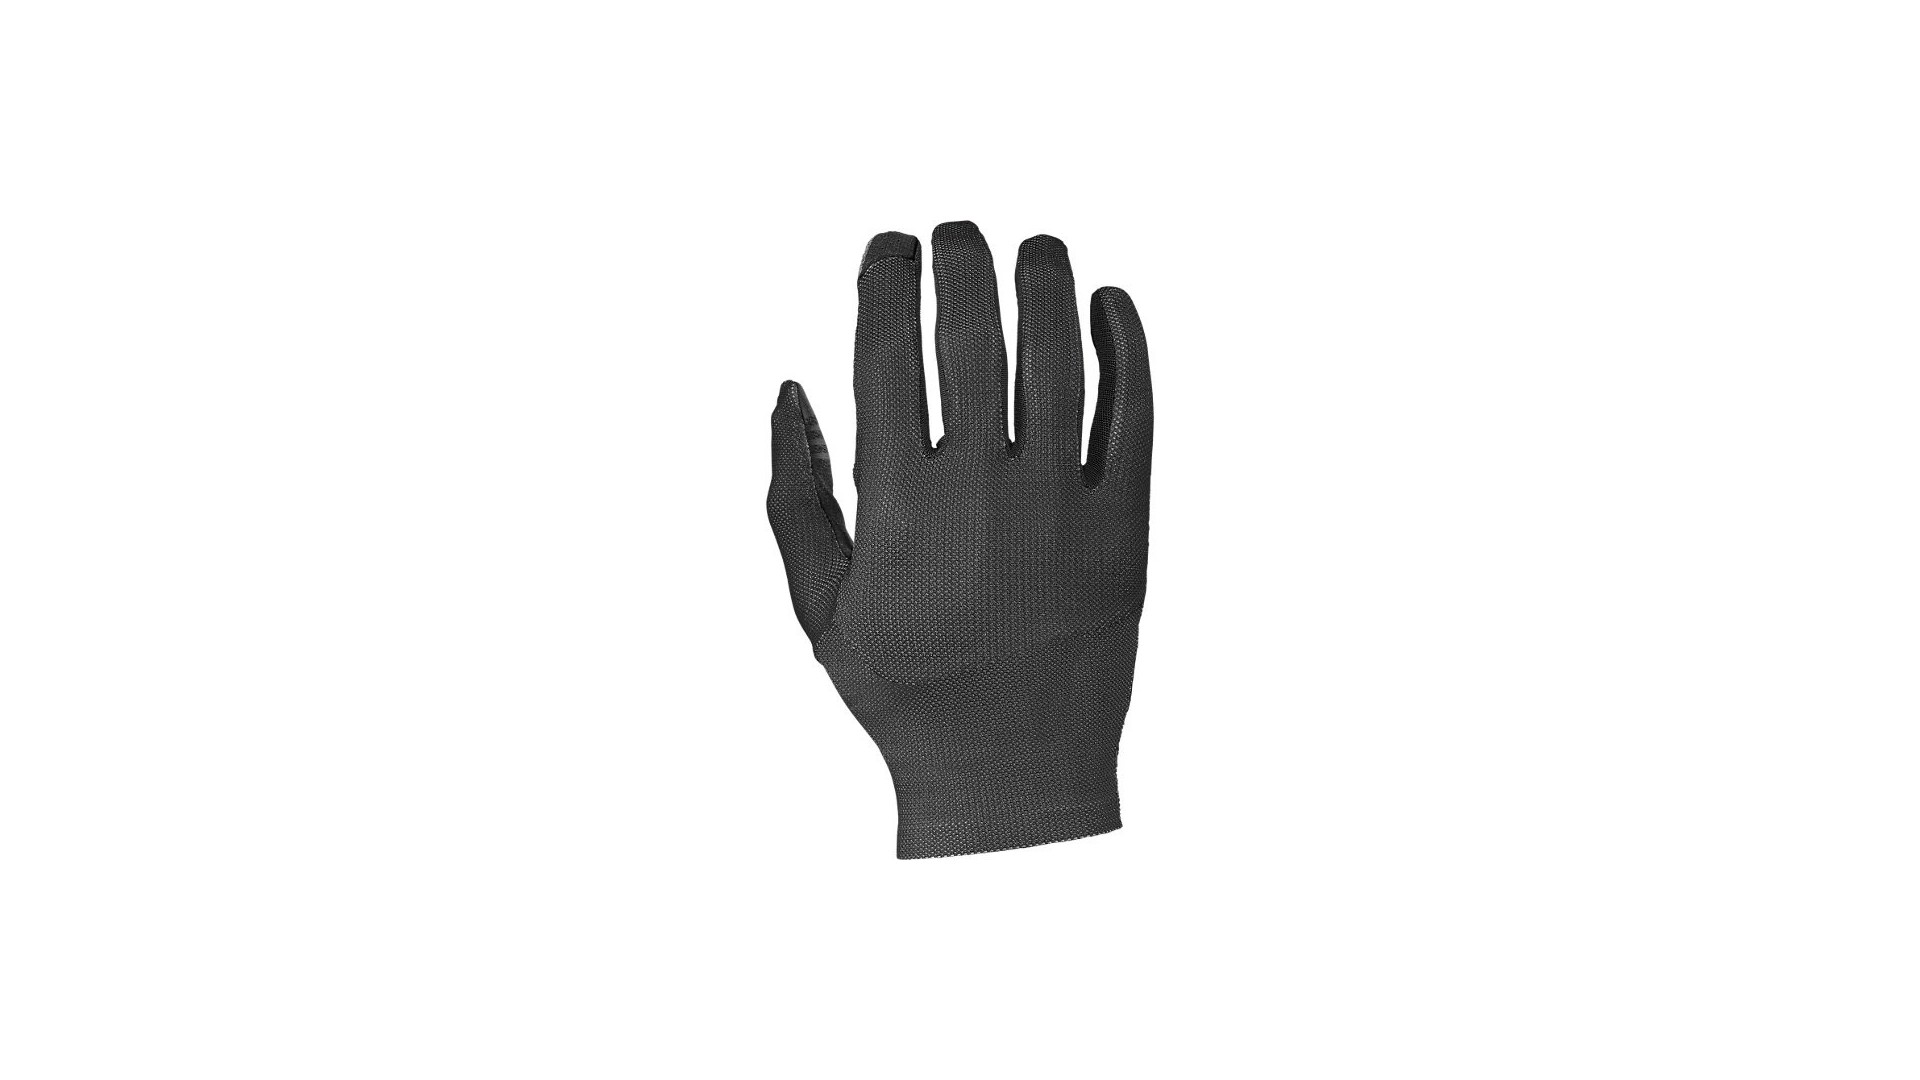 Renegade Guantes LF Specialized Negro 1 IBKBike.es